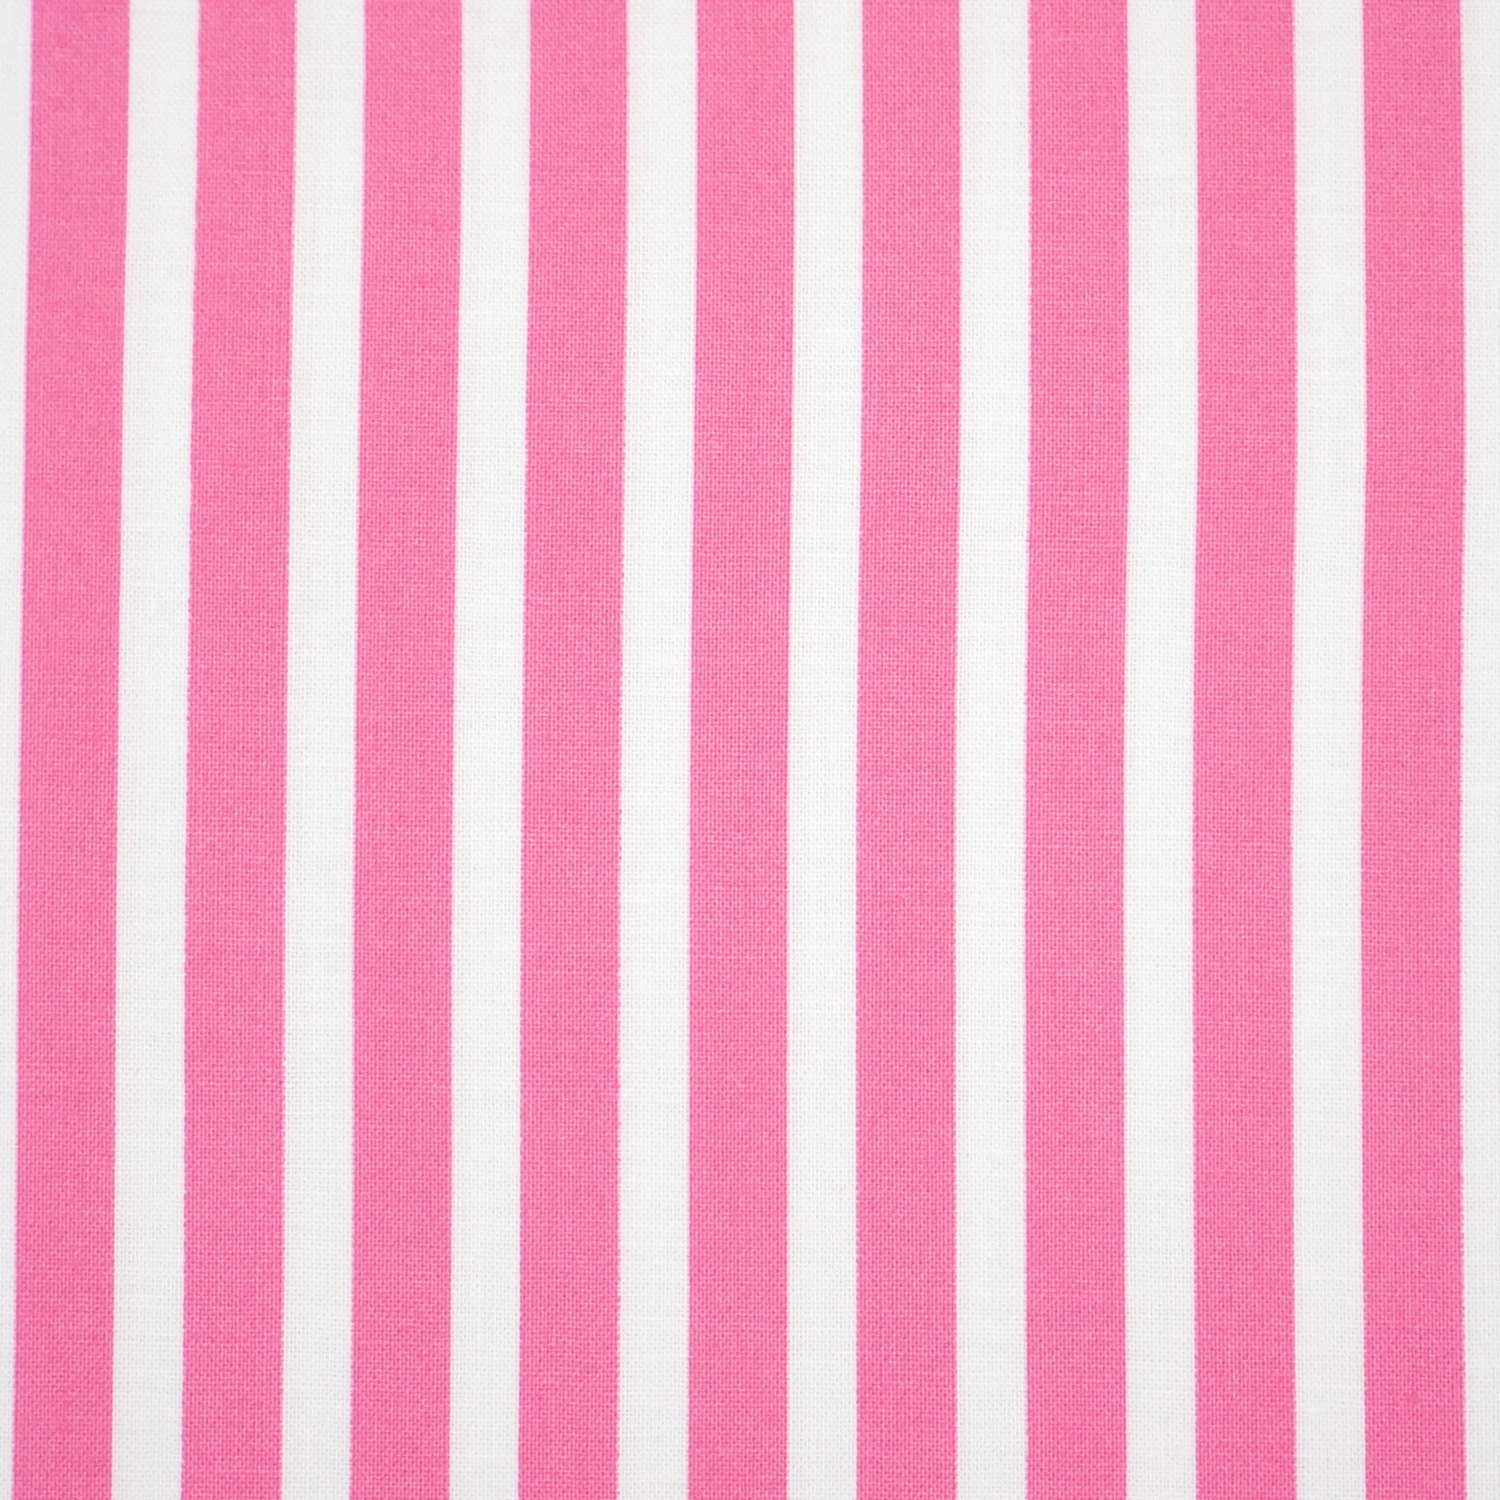 Windham Fabric Stripe Bright Basic - Hot Pink 29396-4